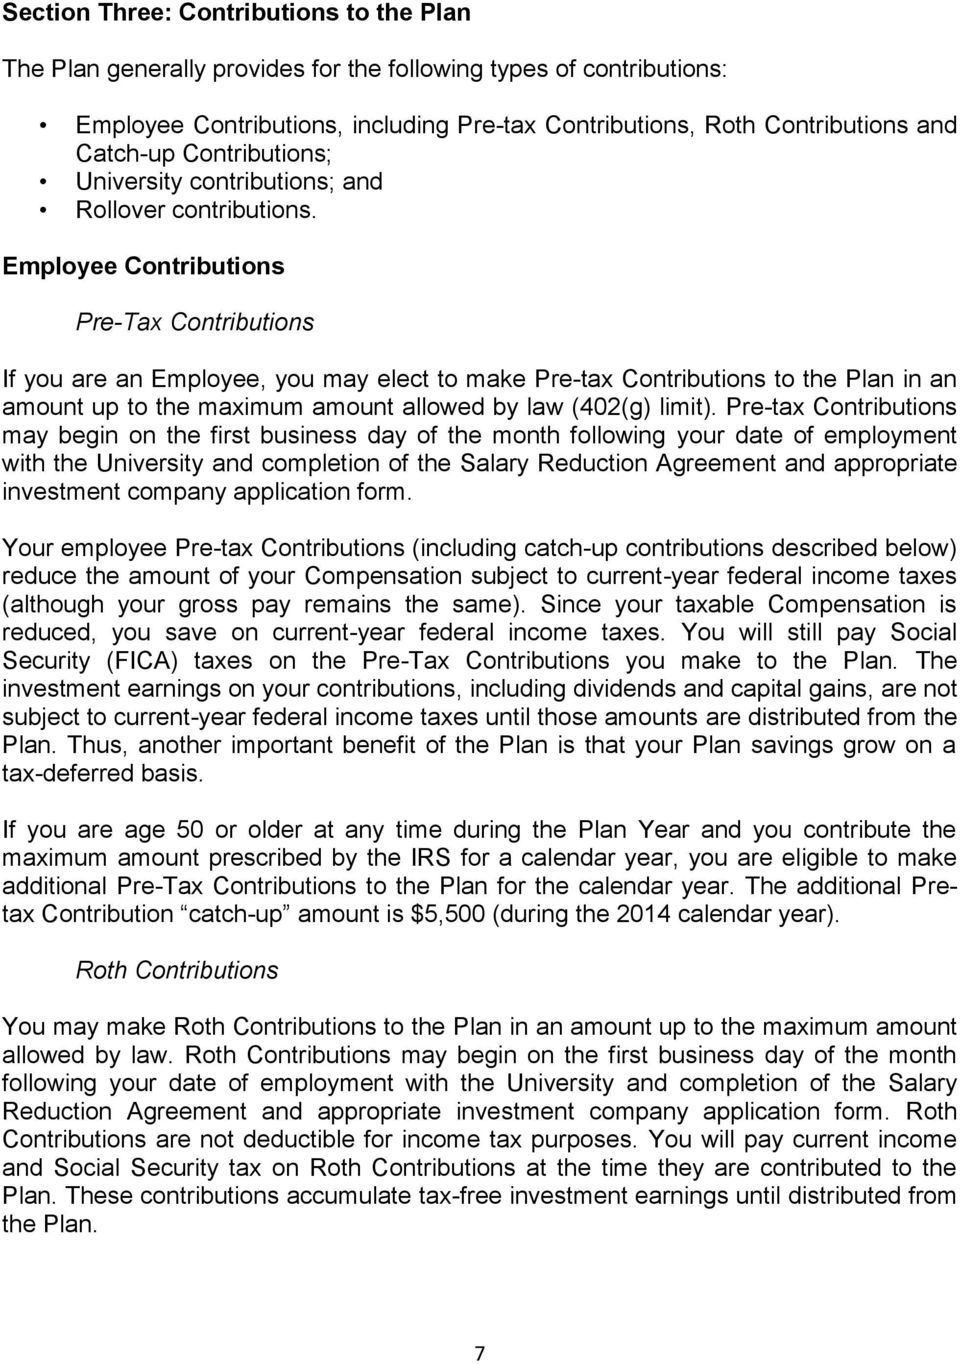 Employee Contributions Pre-Tax Contributions If you are an Employee, you may elect to make Pre-tax Contributions to the Plan in an amount up to the maximum amount allowed by law (402(g) limit).